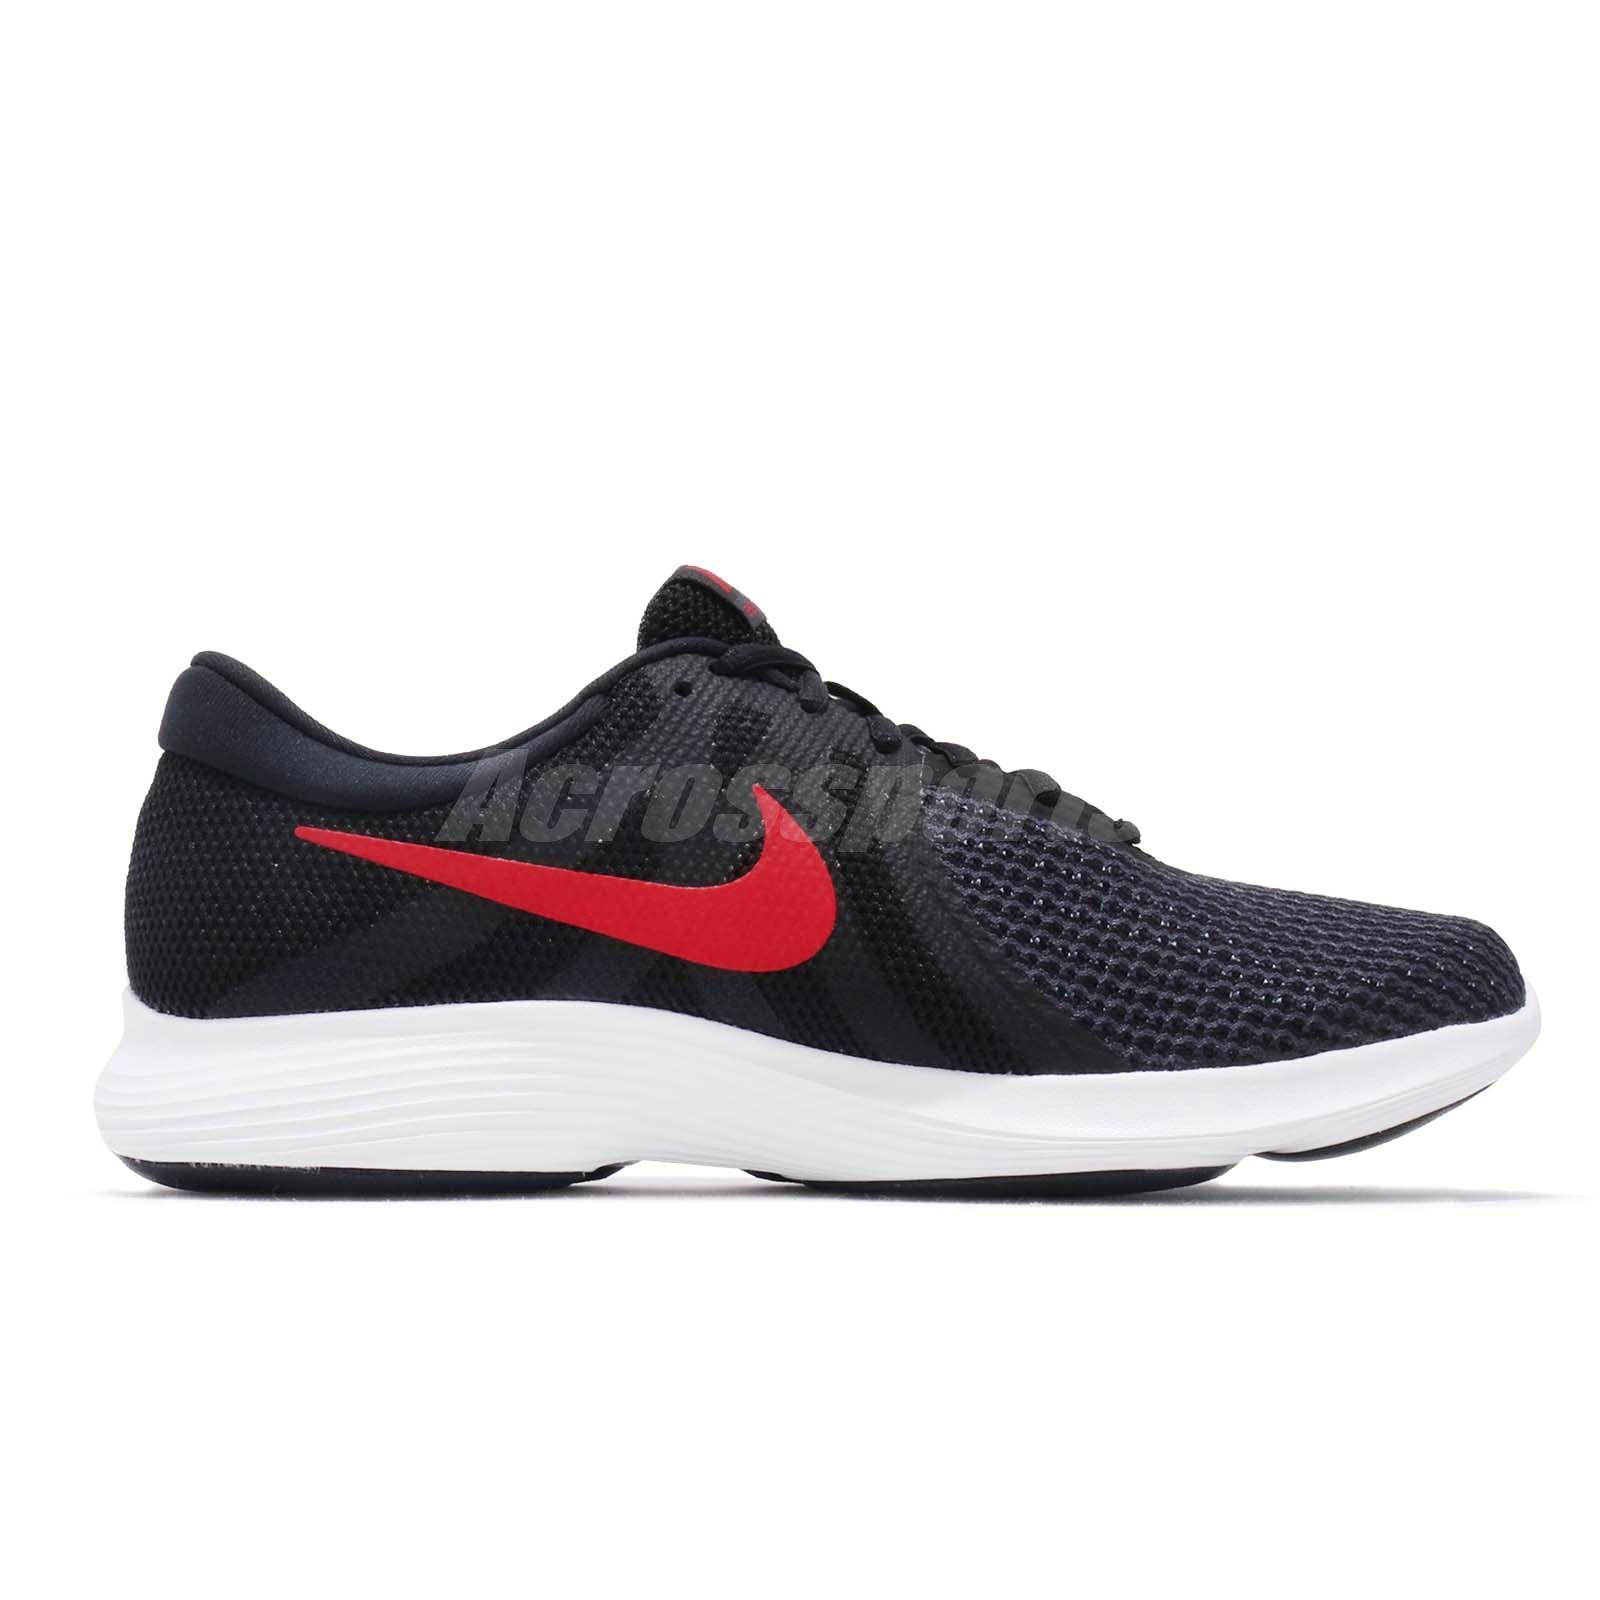 Black Red Grey Men 908988 Nike Details About Shoes Sneakers 4 Revolution White Running 011 7yIf6Ybgv